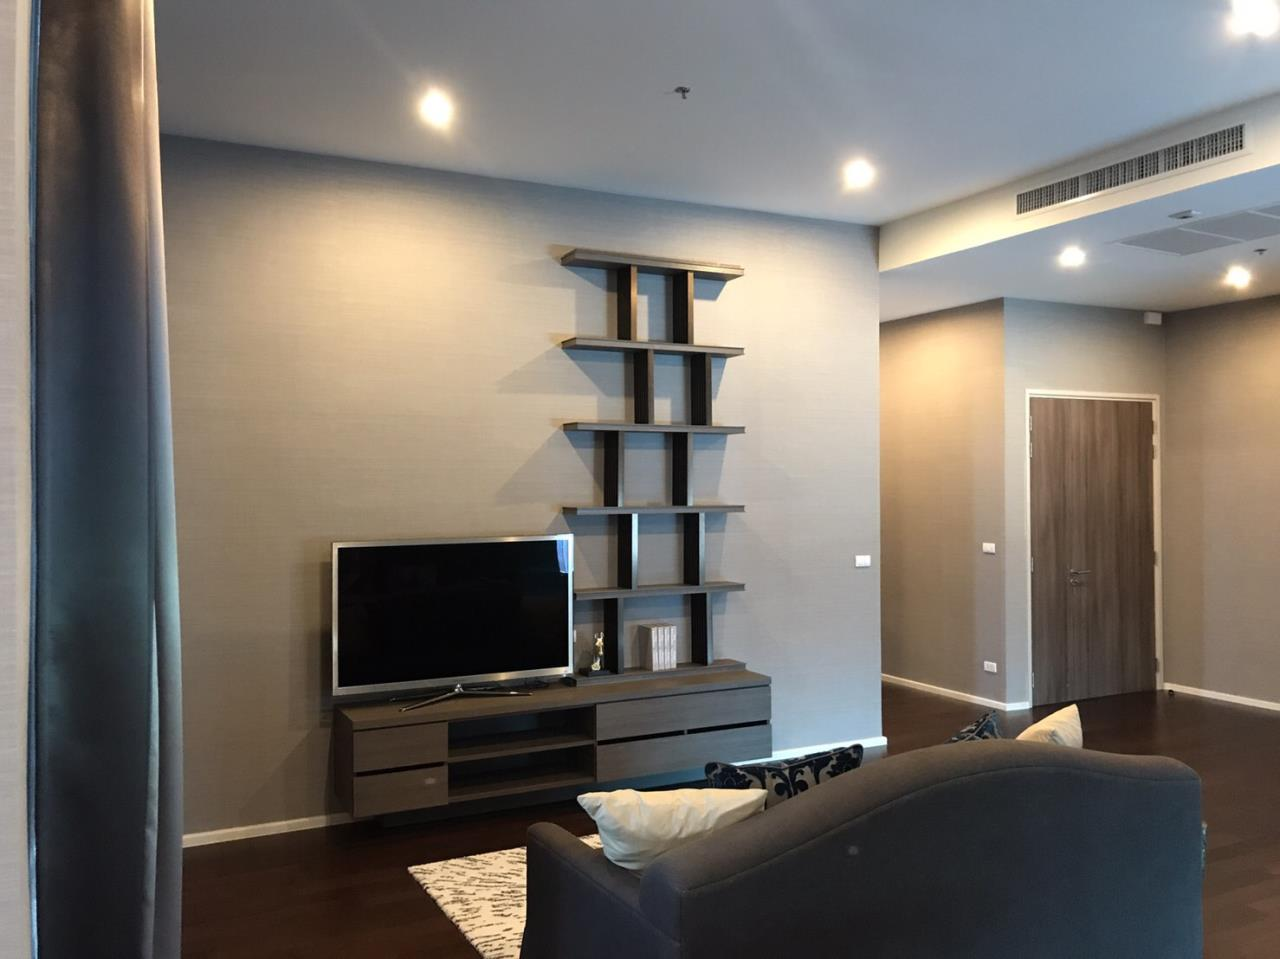 Siam Prop Agency's The Capital Ekamai - Thonglor Condo, 2 bedrooms Penthouse for rent with 4-meter ceiling height 1